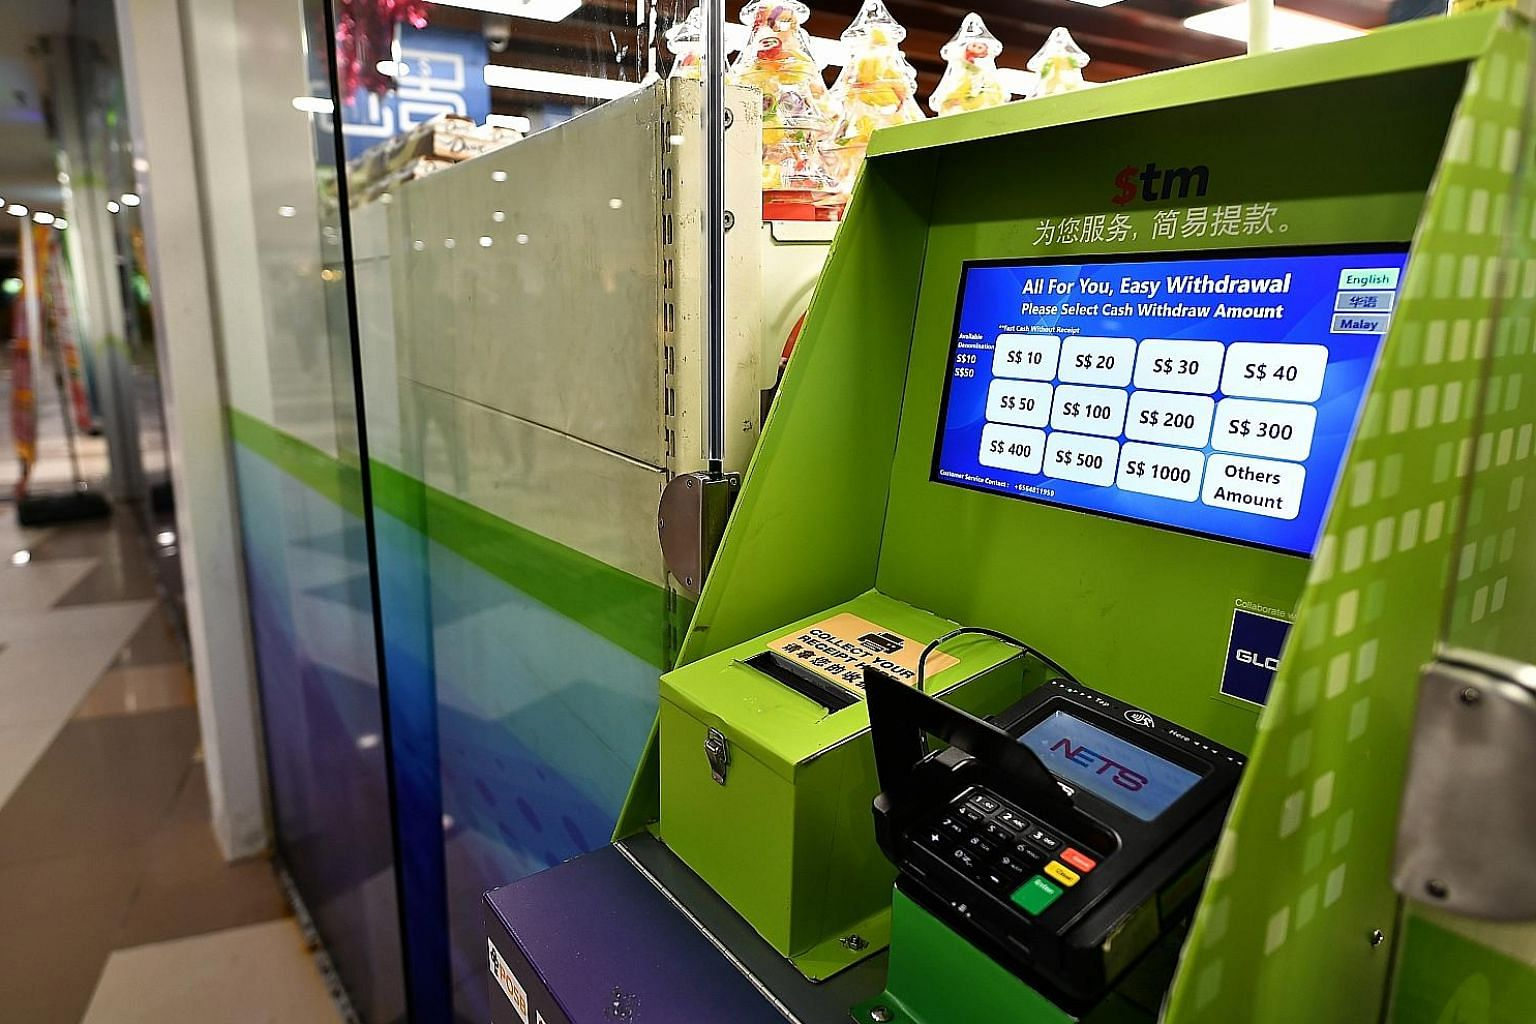 The first $tm machine was installed outside the Sheng Siong supermarket at ITE College Central in Ang Mo Kio in April. It allows users to withdraw amounts starting at $10 from their bank accounts at four banks.